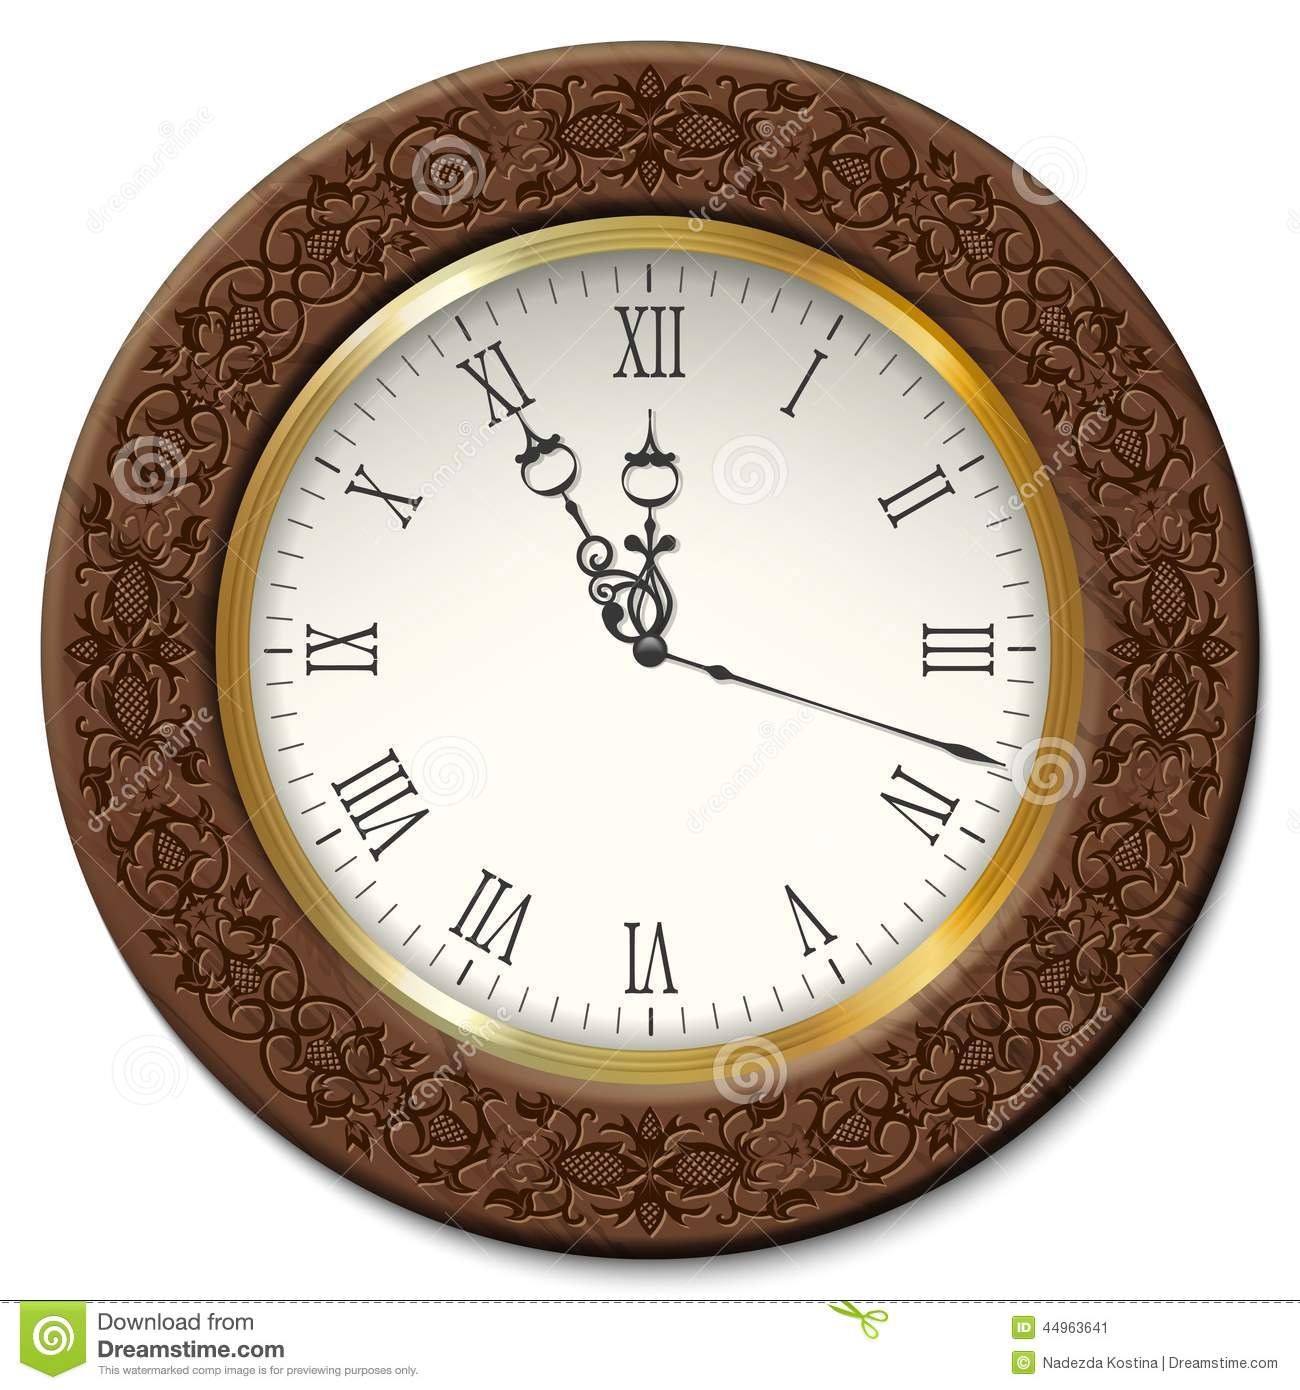 royaltyfree vector download vector vintage wall clock